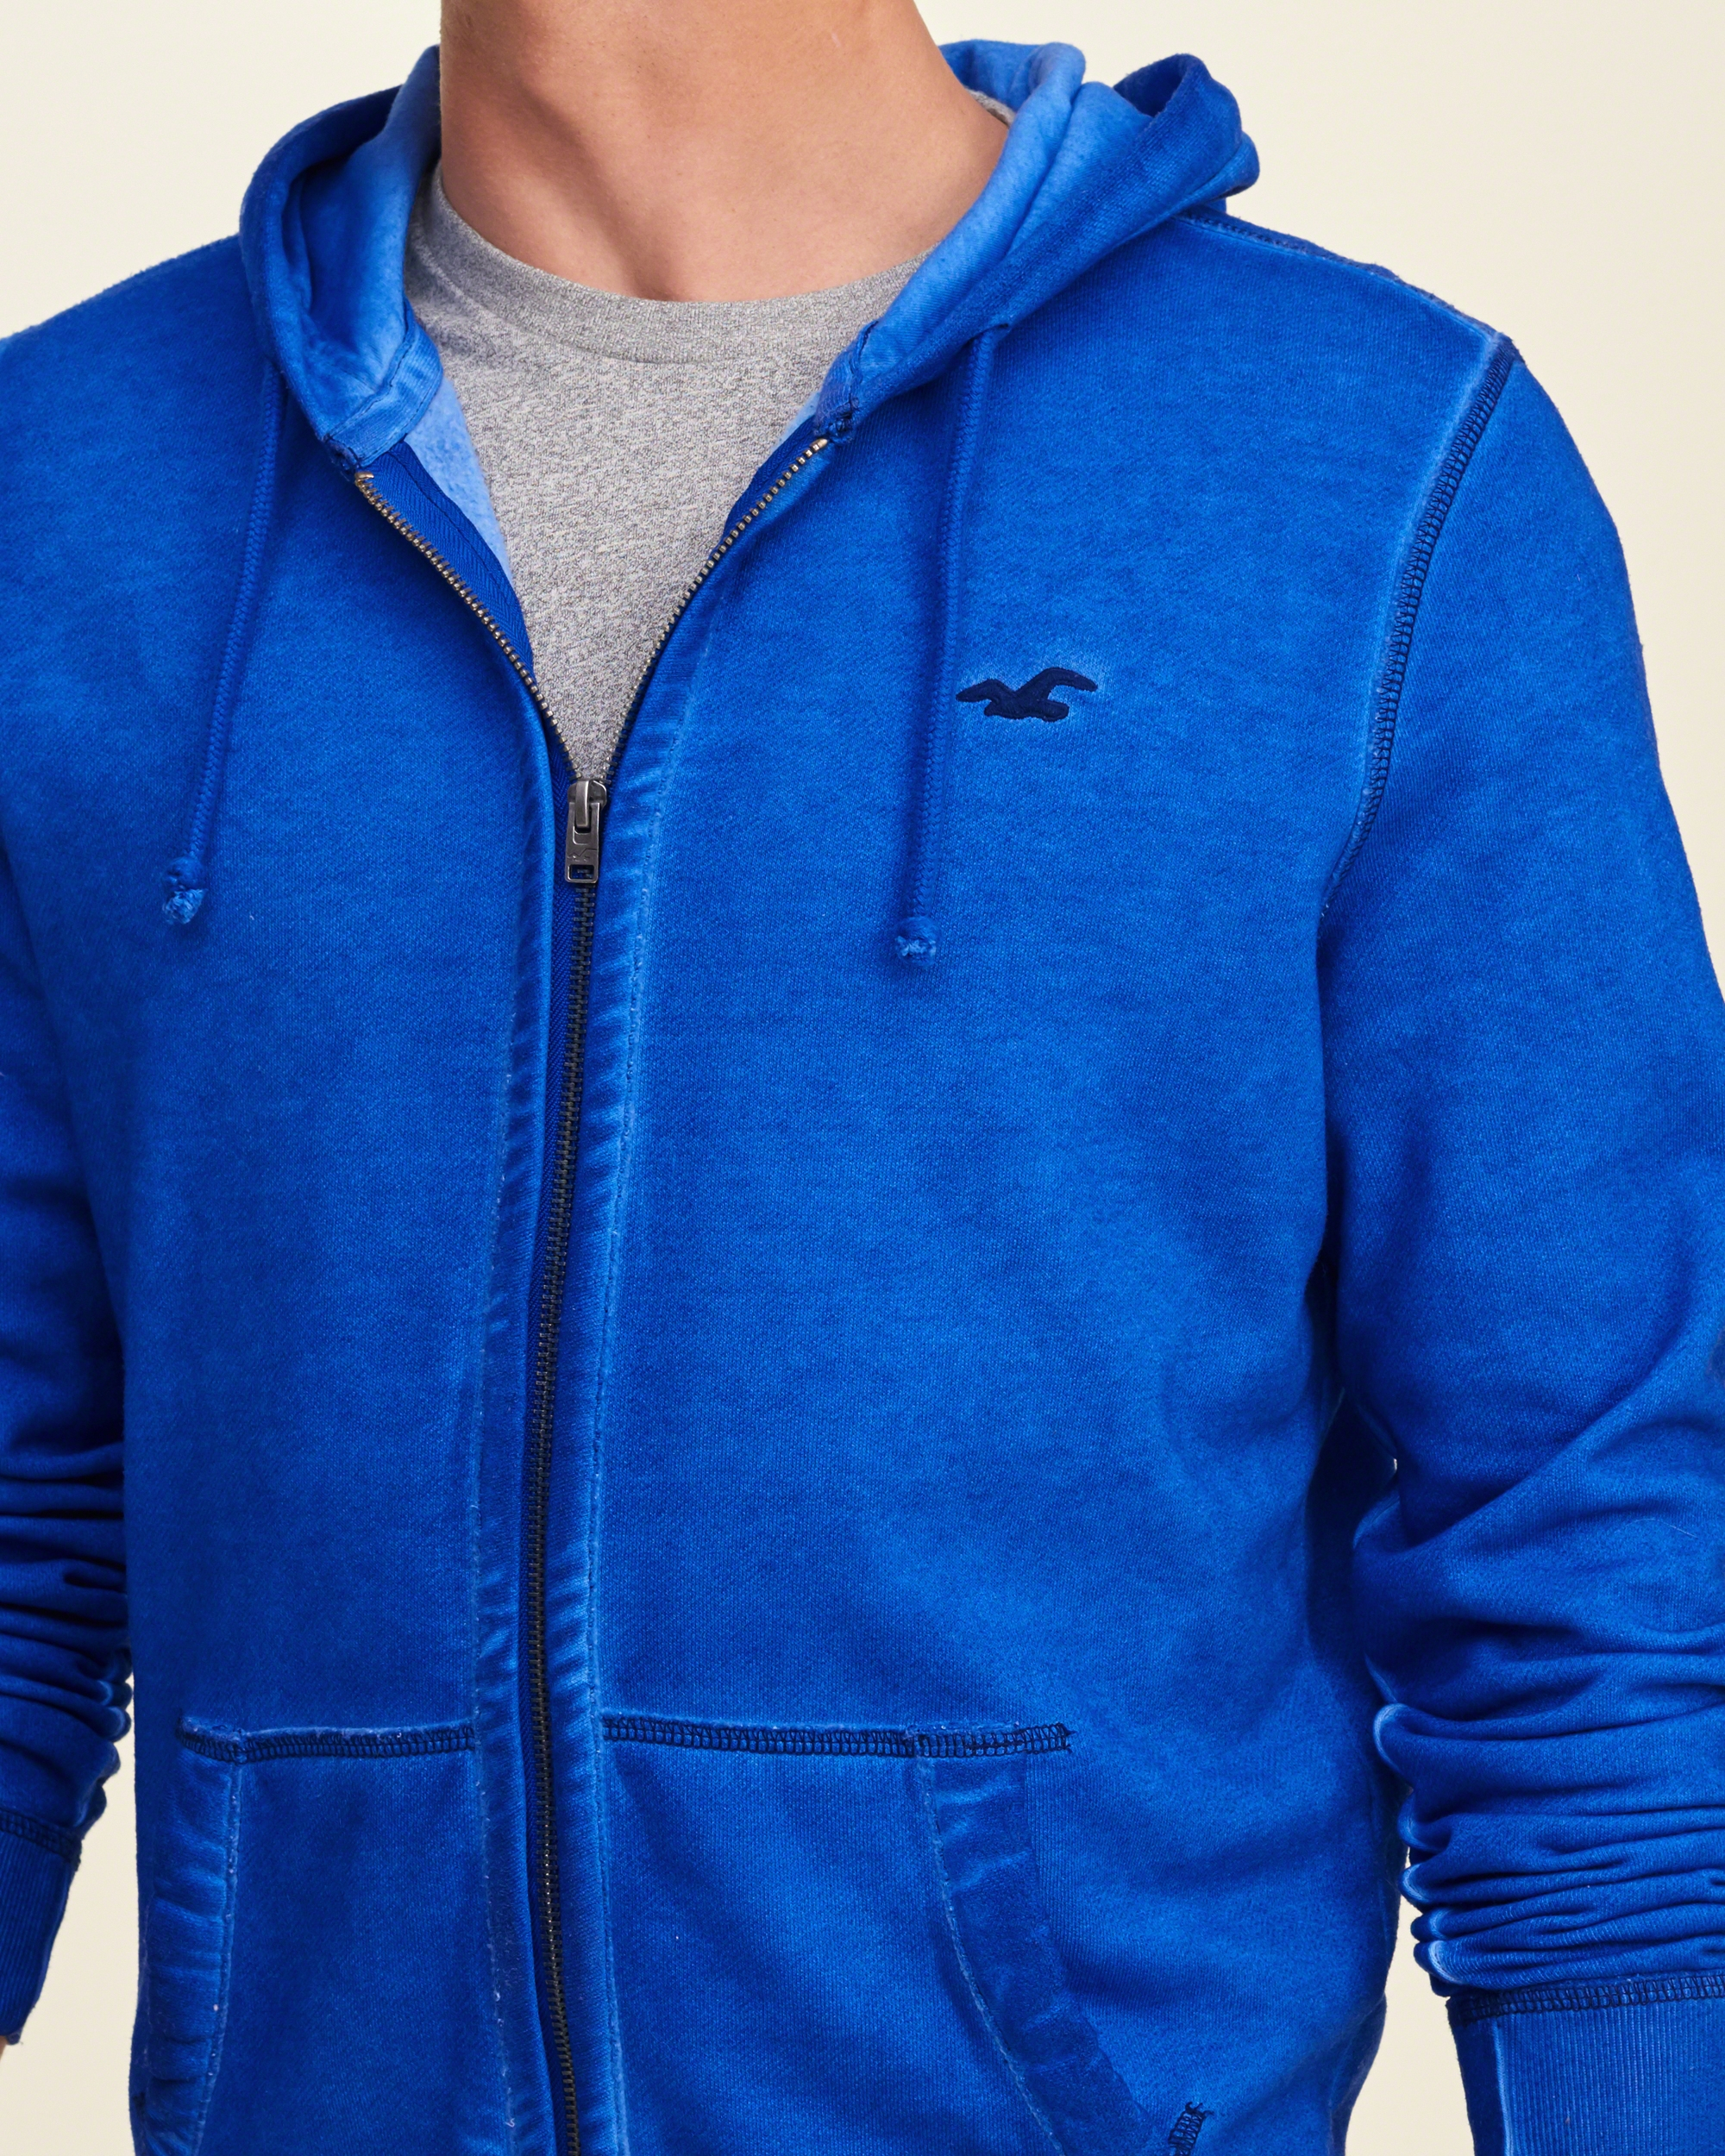 Hollister Sweaters Hollister Hoodies Hollister Shirts Hollister Jacket Hollister Pants Hollister Jeans: Hollister Iconic Dyed Hoodie In Blue For Men